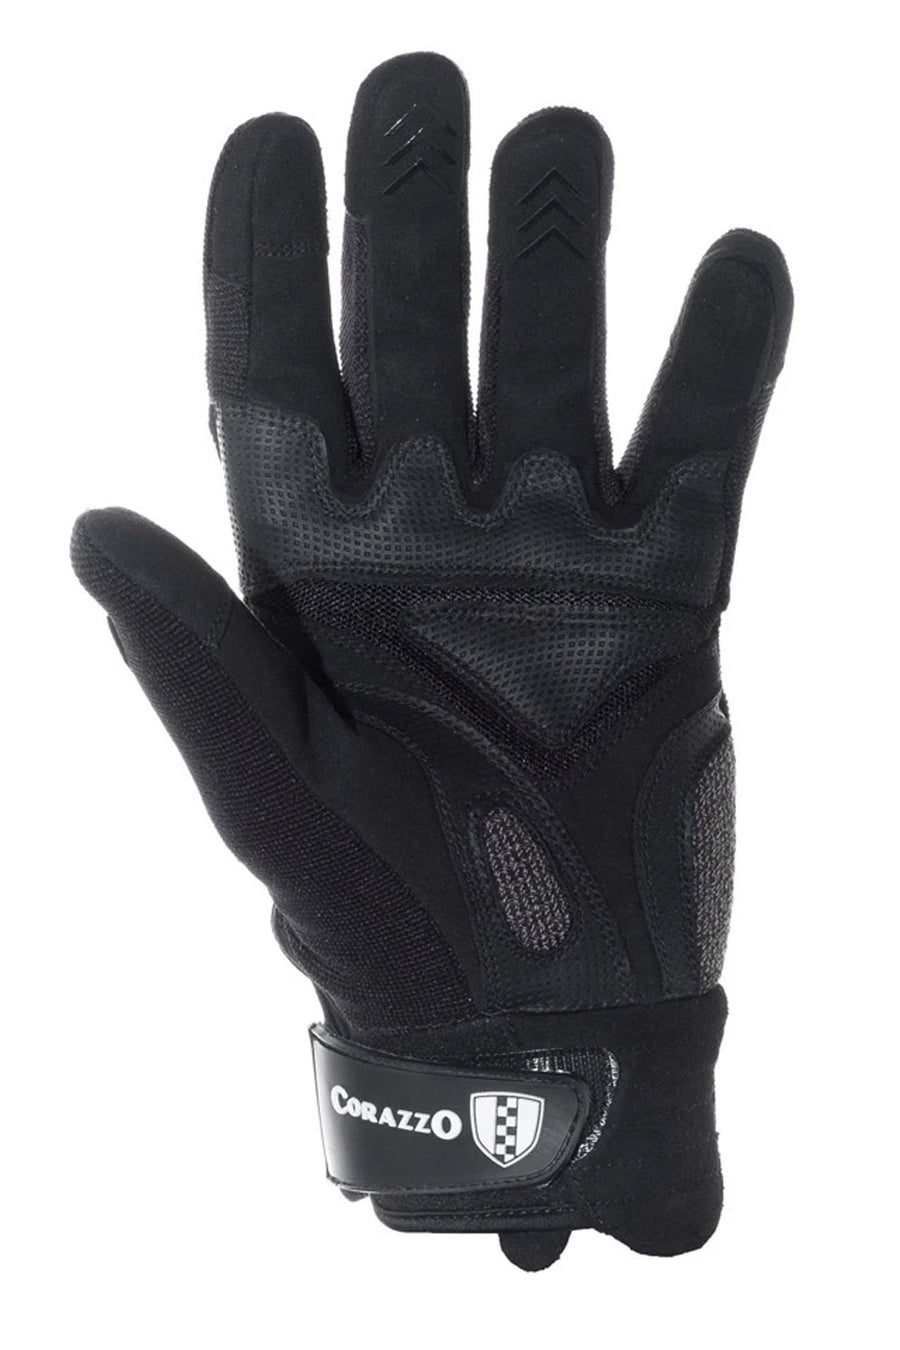 Bolla Vegan Motorcycle Gloves